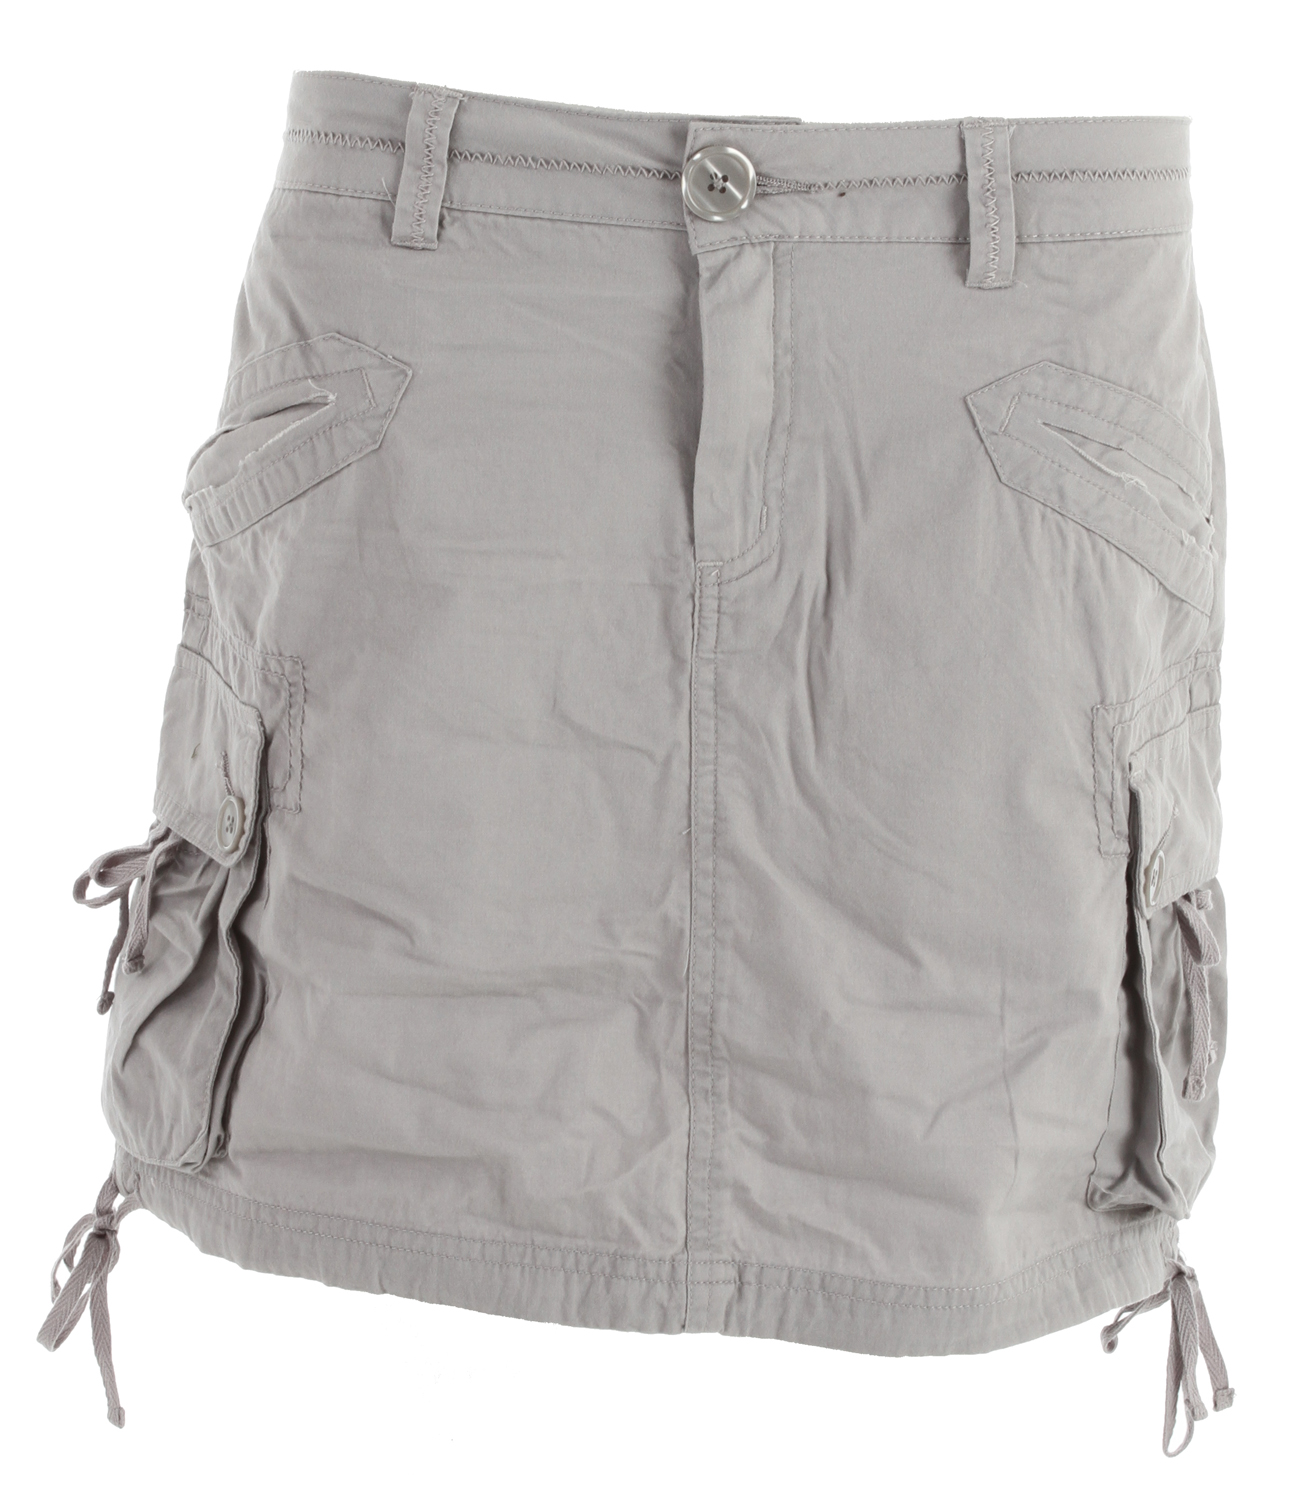 "The lightweight twill Ellia is ready for a day in the sand, a night on the town, and anything in between. A do-it-all skirt for a do-it-all person, made from 100% organic cotton.Key Features of the Prana Ellia Cargo Skirt: Lightweight twill with enzyme wash Front welt pockets Side cargo pockets Twill tape adjustments at bottom hemline Size small = 17"" (43cm) outseam 100 Organic Cotton; 5.9 oz - $24.99"